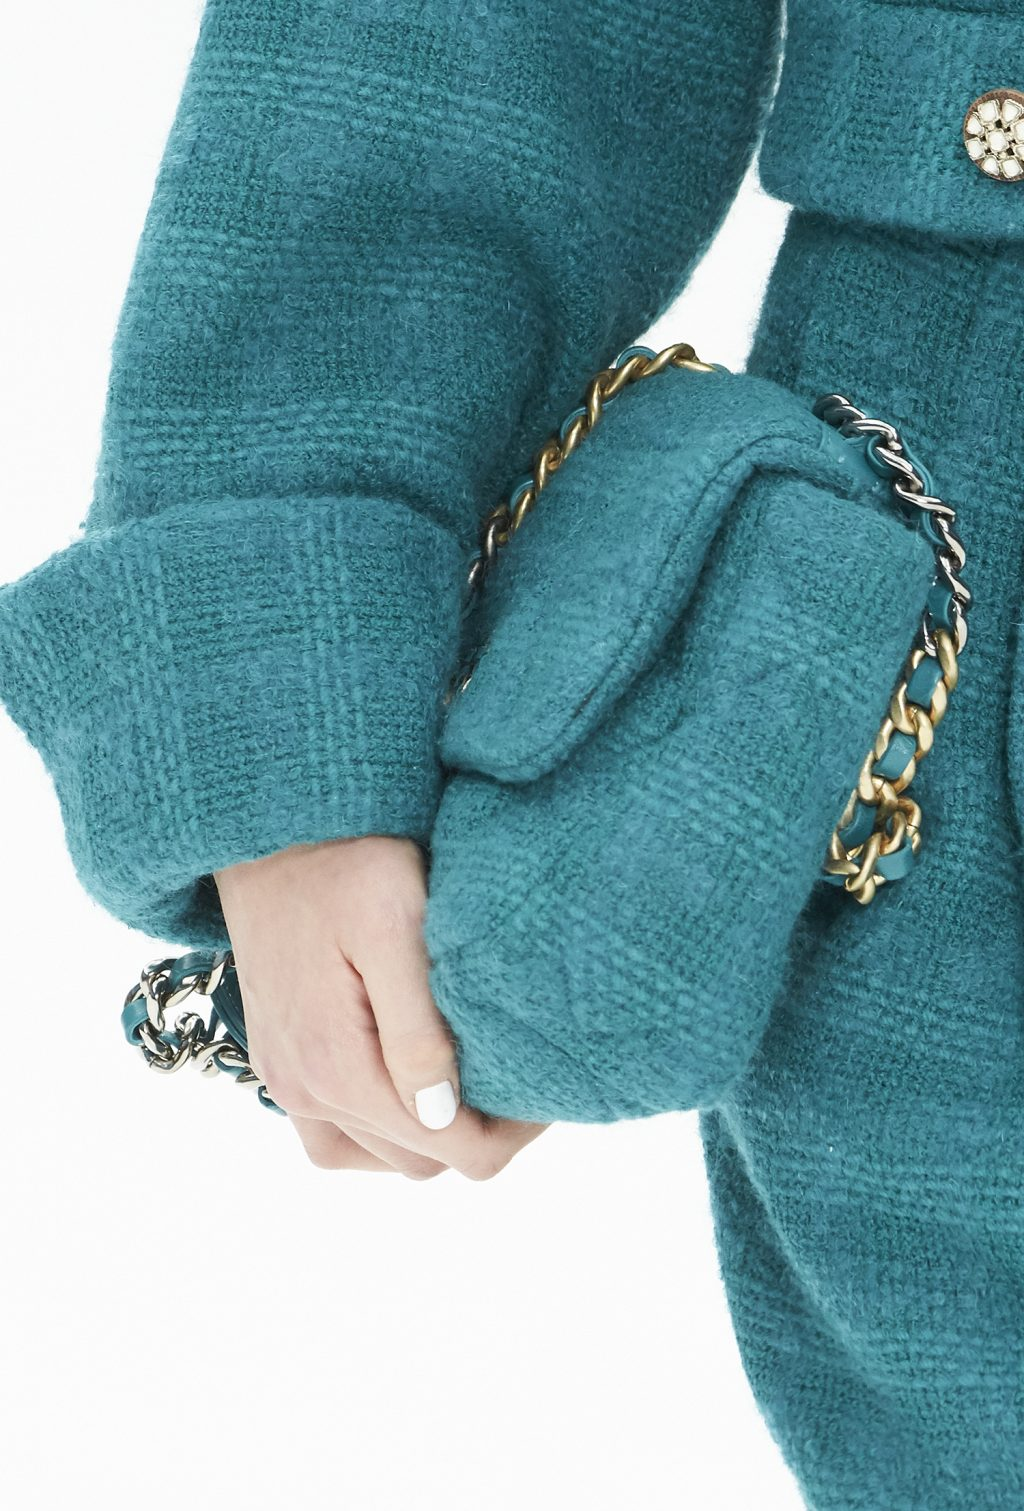 We're Crushing (Hard) on Chanel's New Handbag Collection